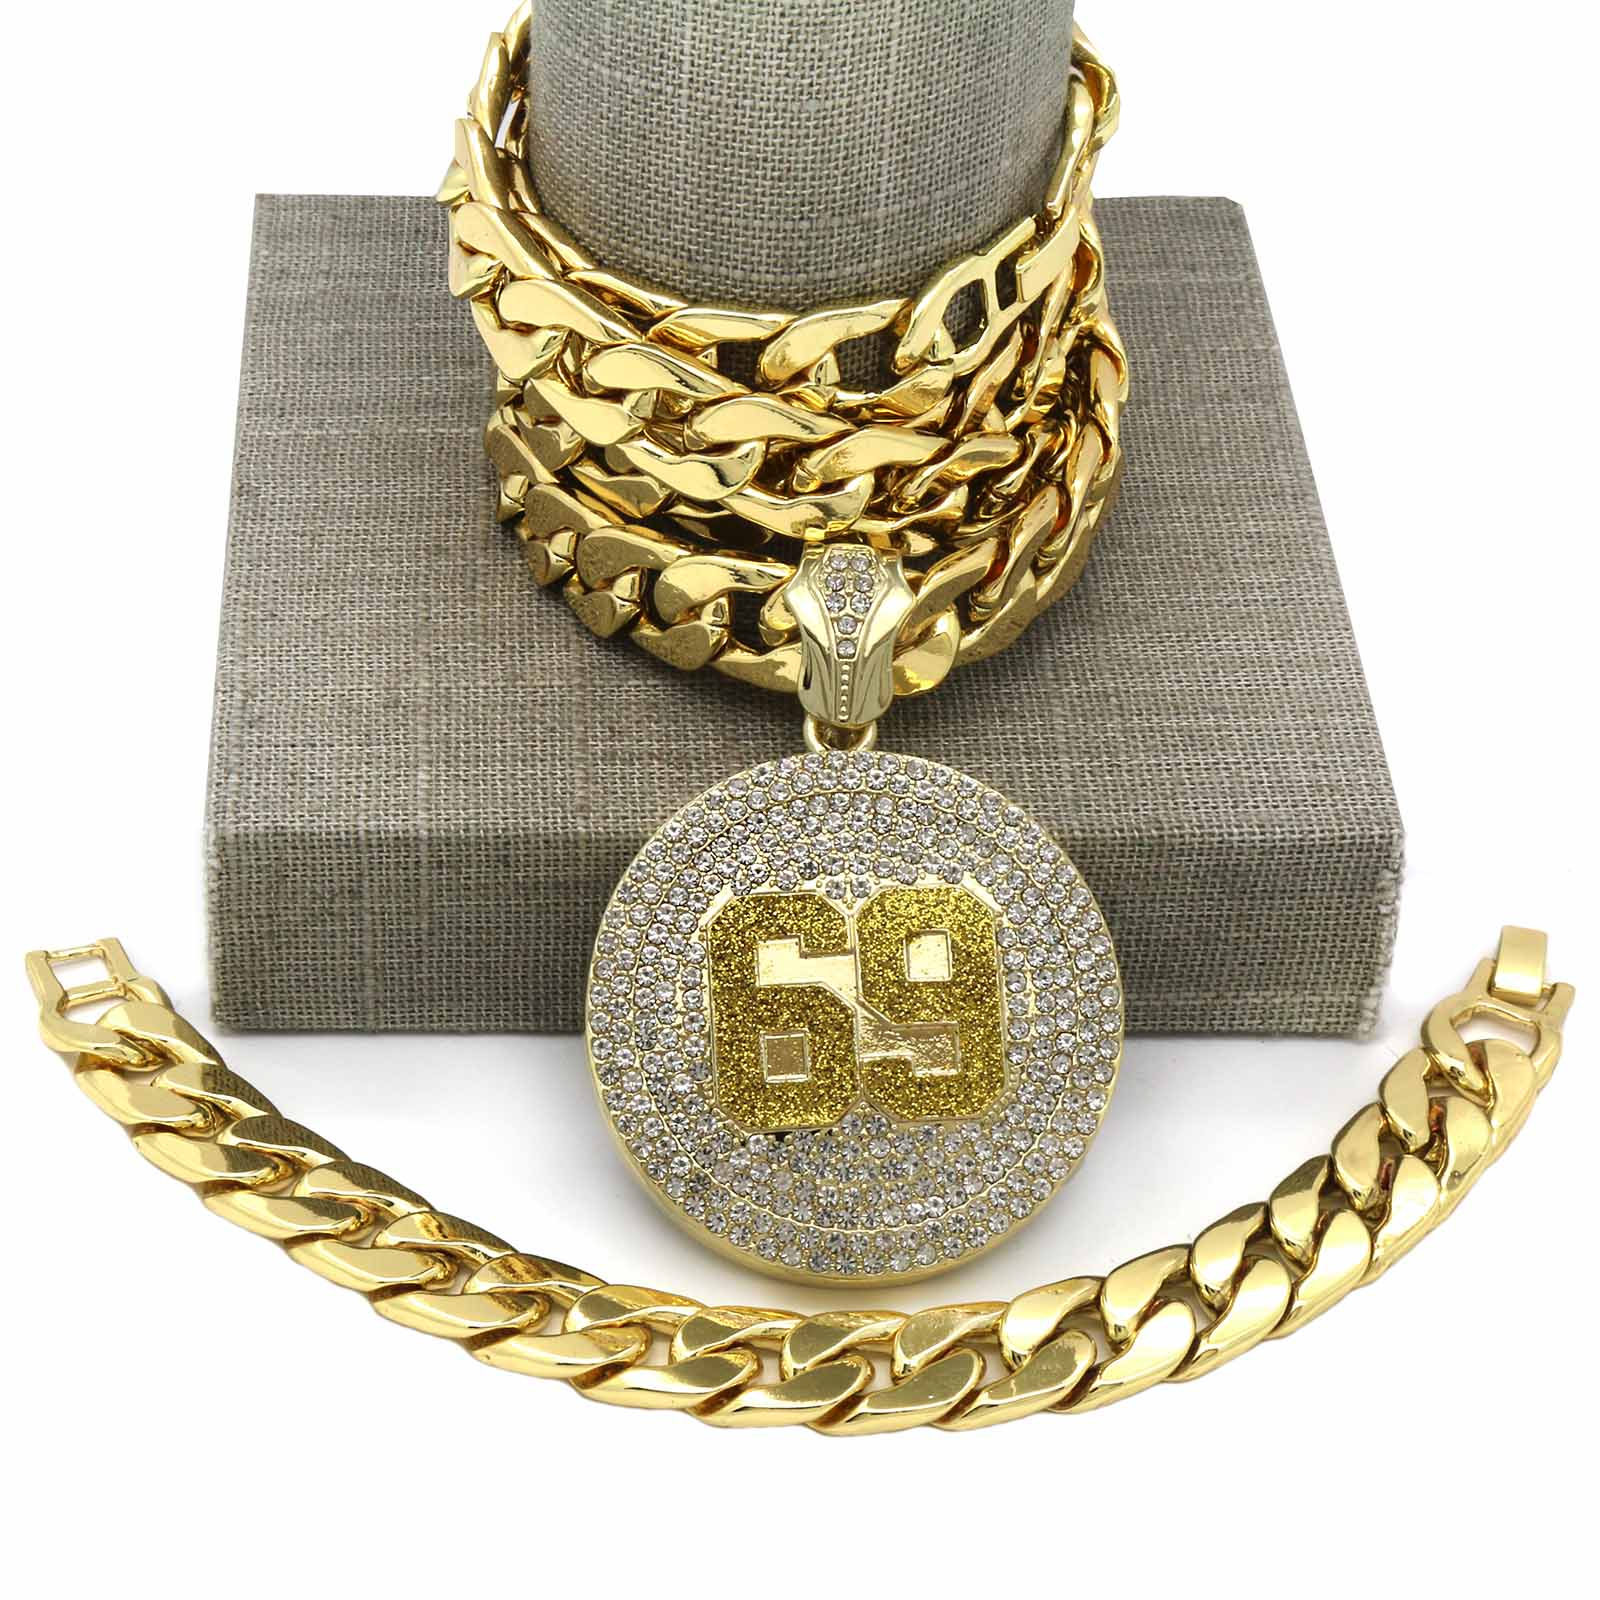 CUBAN CHAIN & BRACELET GOLD 69